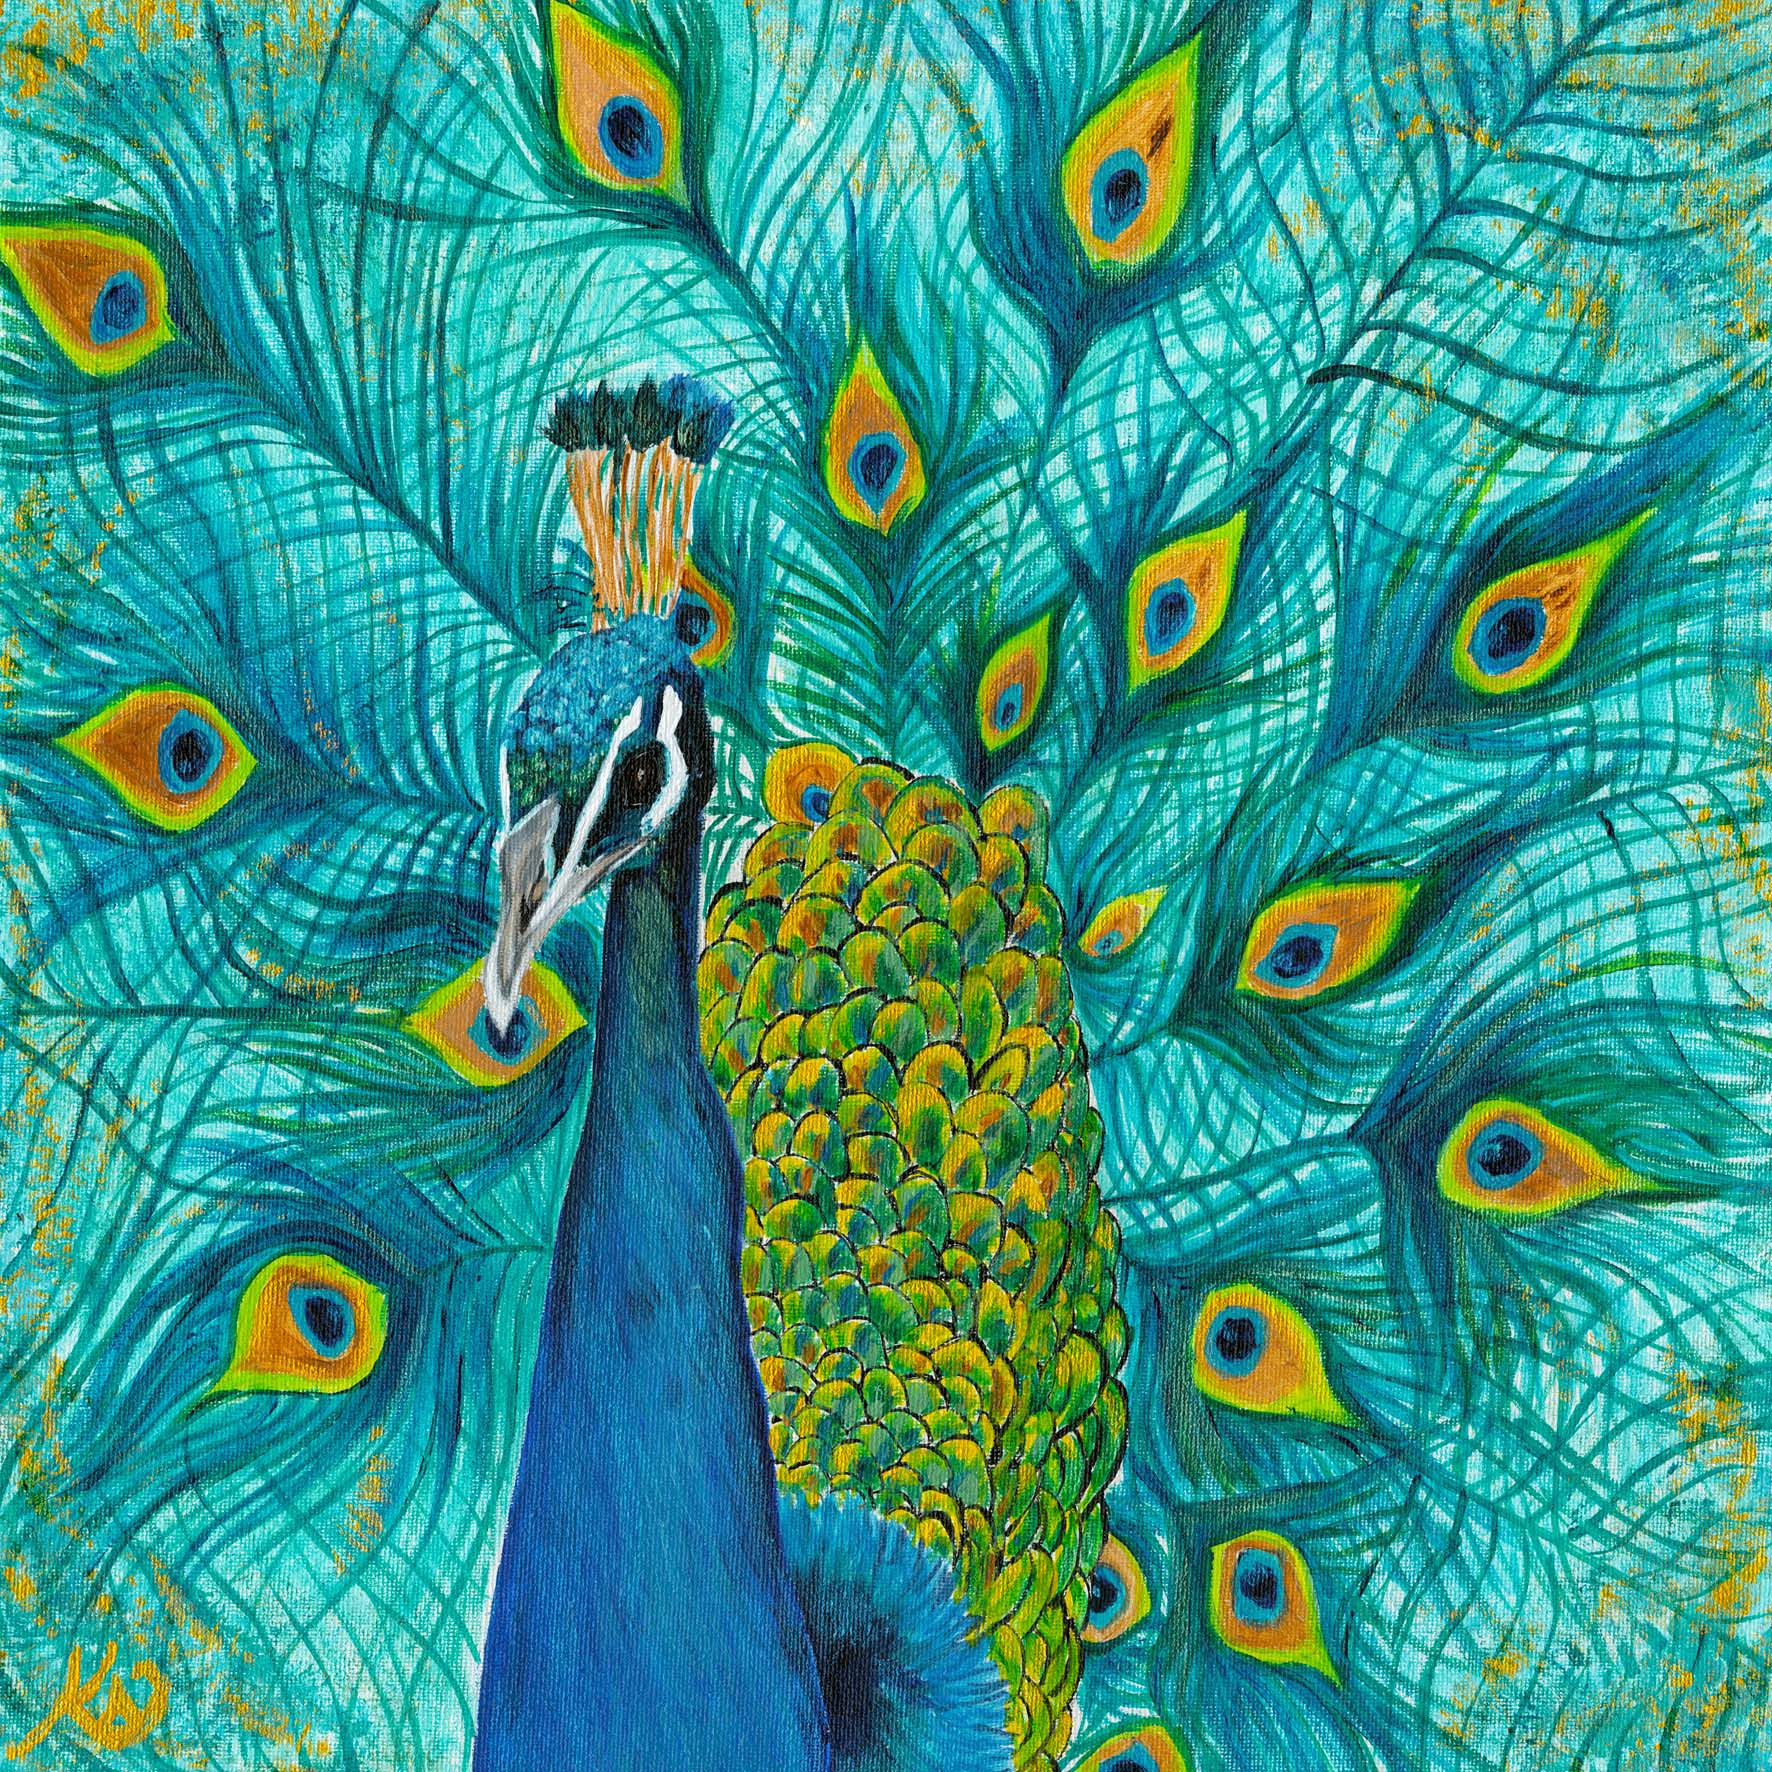 Peacock with Fanned Tail Feathers.Original Acrylic on Canvas, 16x 16 inches.